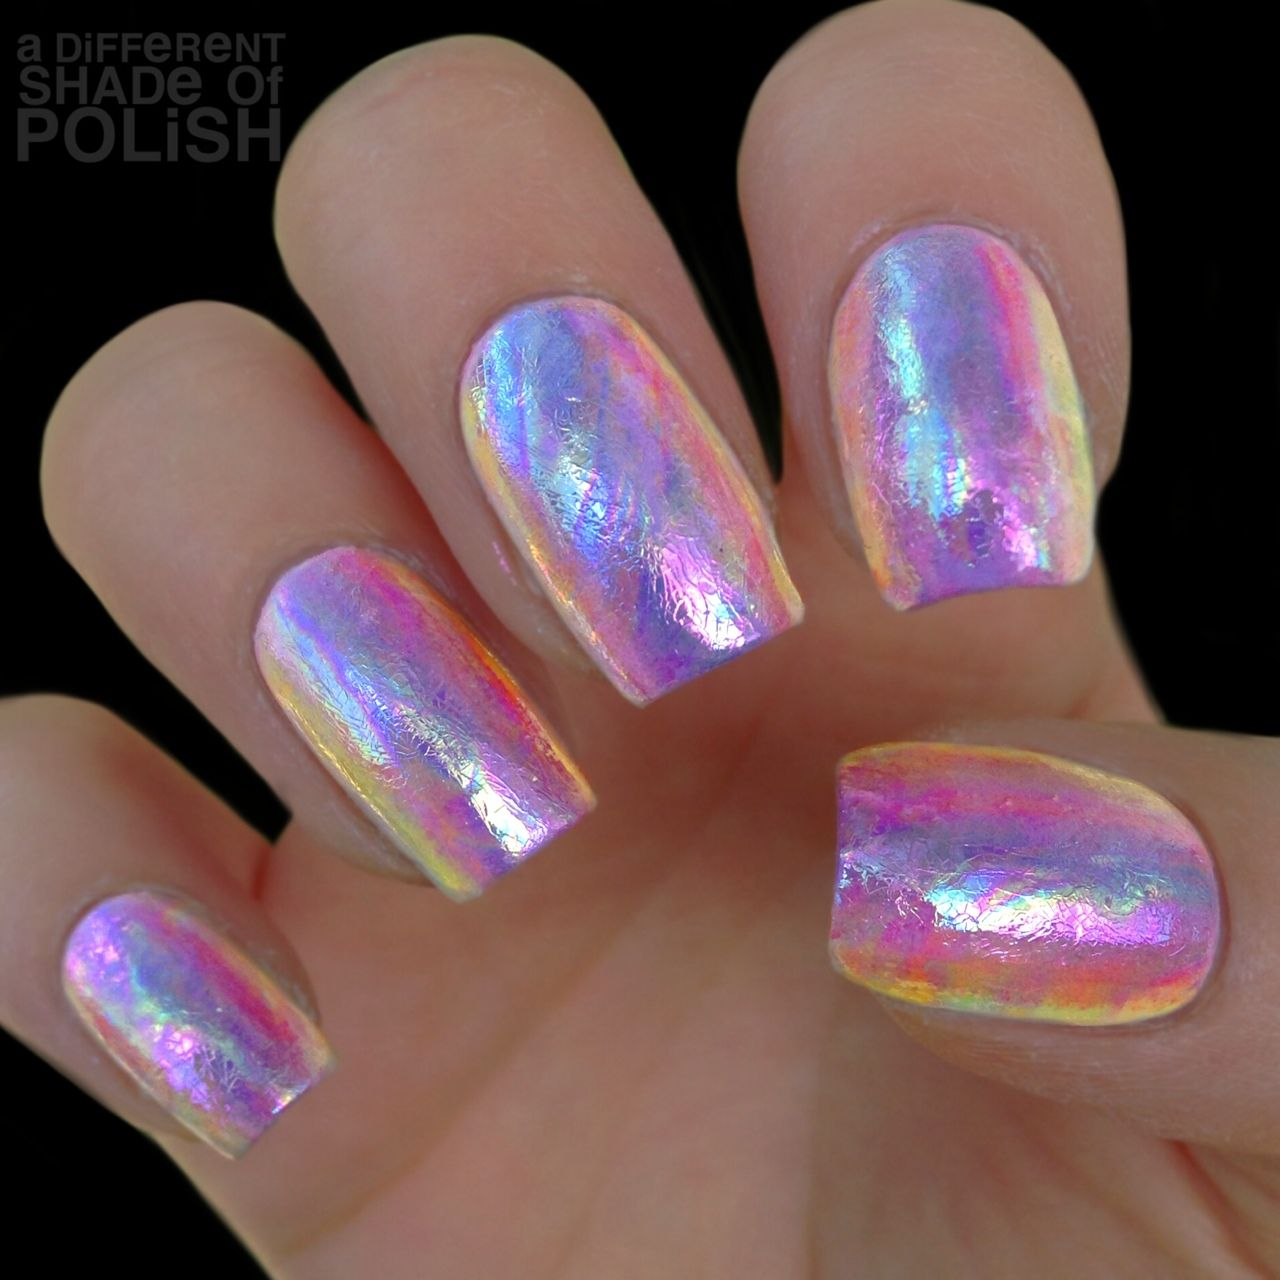 A Different Shade of Polish : Photo | Nailaholic | Pinterest | Opal ...